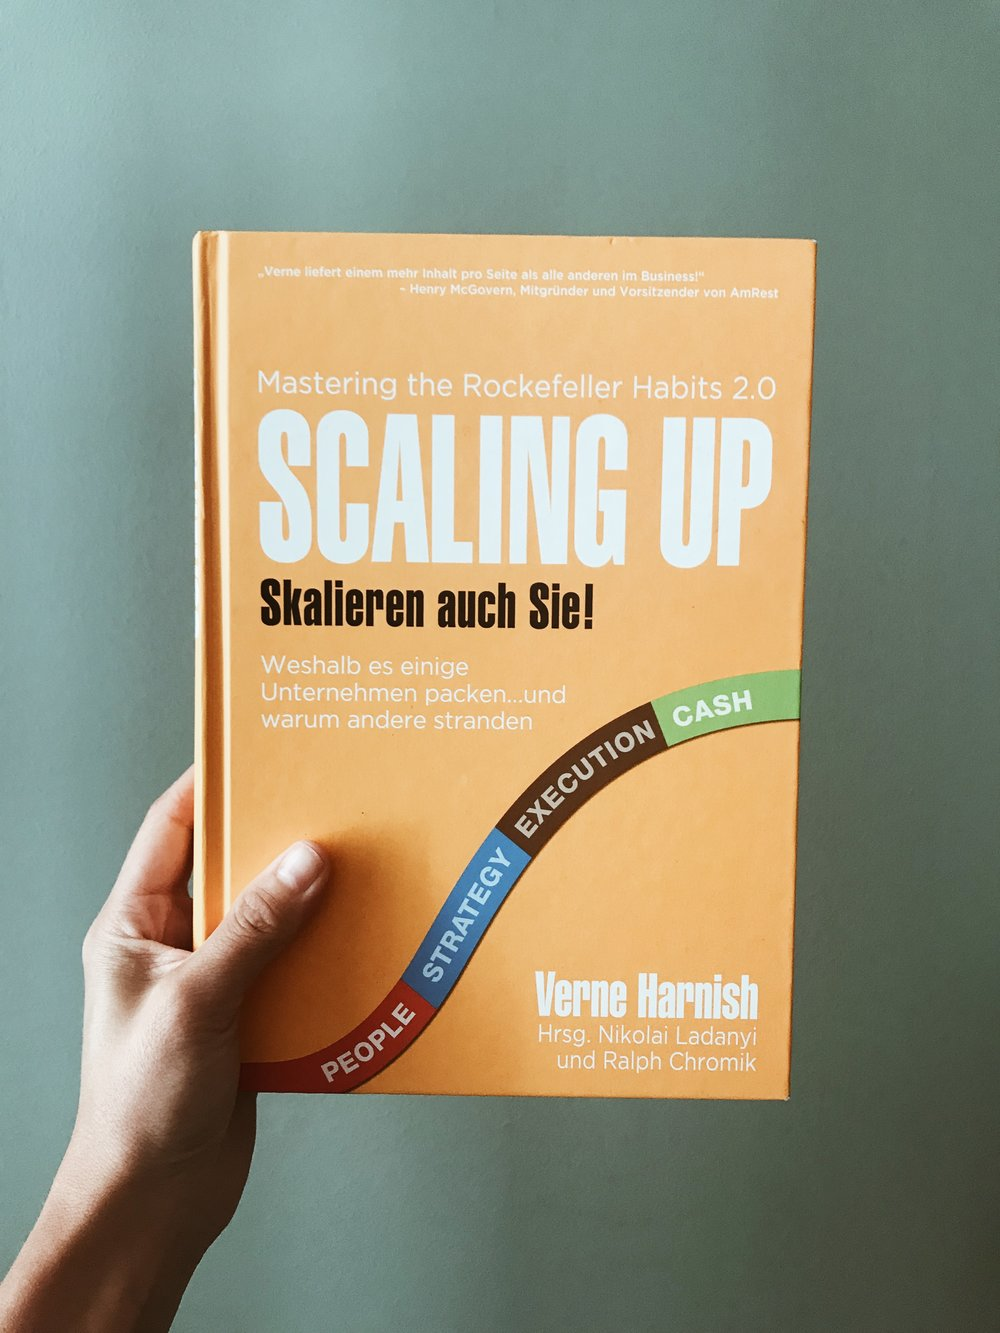 Scaling up - by Verne Harnish, Link to Product